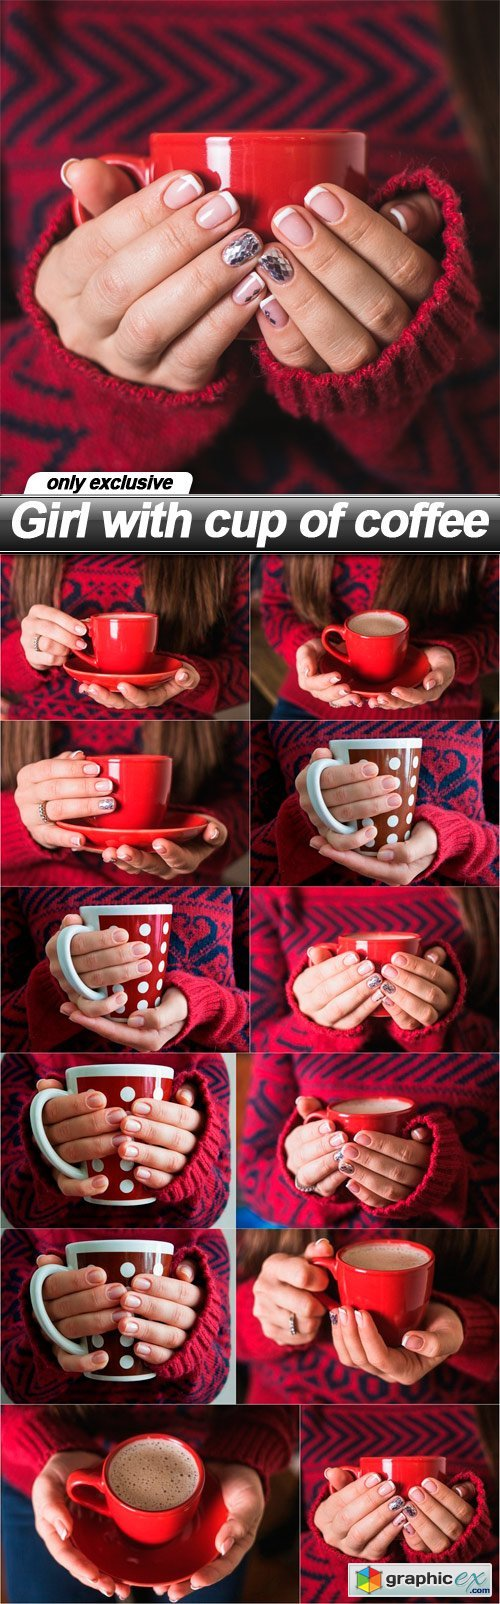 Girl with cup of coffee - 12 UHQ JPEG